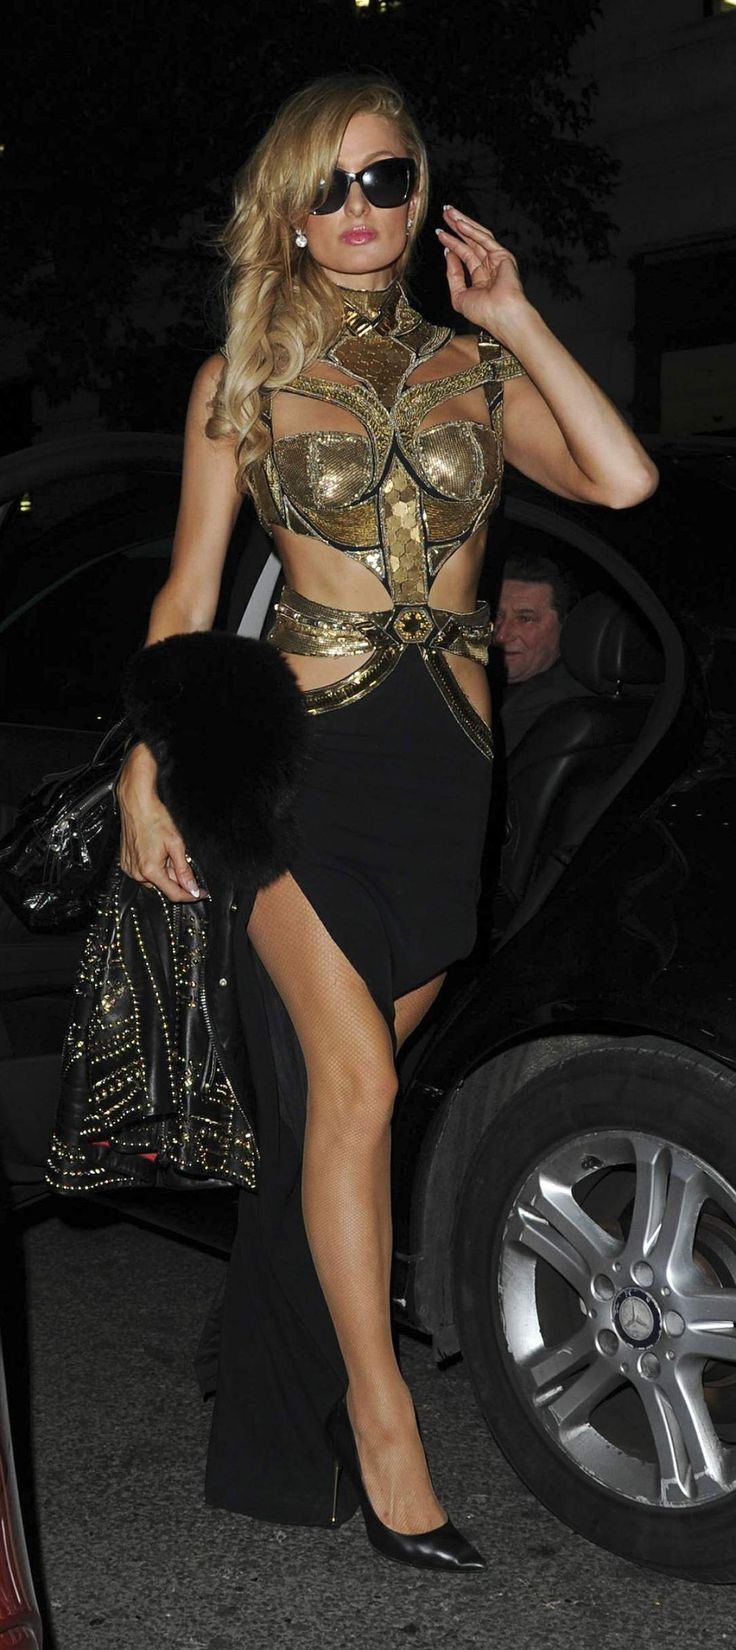 Paris Hilton Arrives at Mayfair Hotel in London  Read more: http://www.celebskart.com/paris-hilton-arrives-mayfair-hotel-london/#ixzz4YZZcgh00